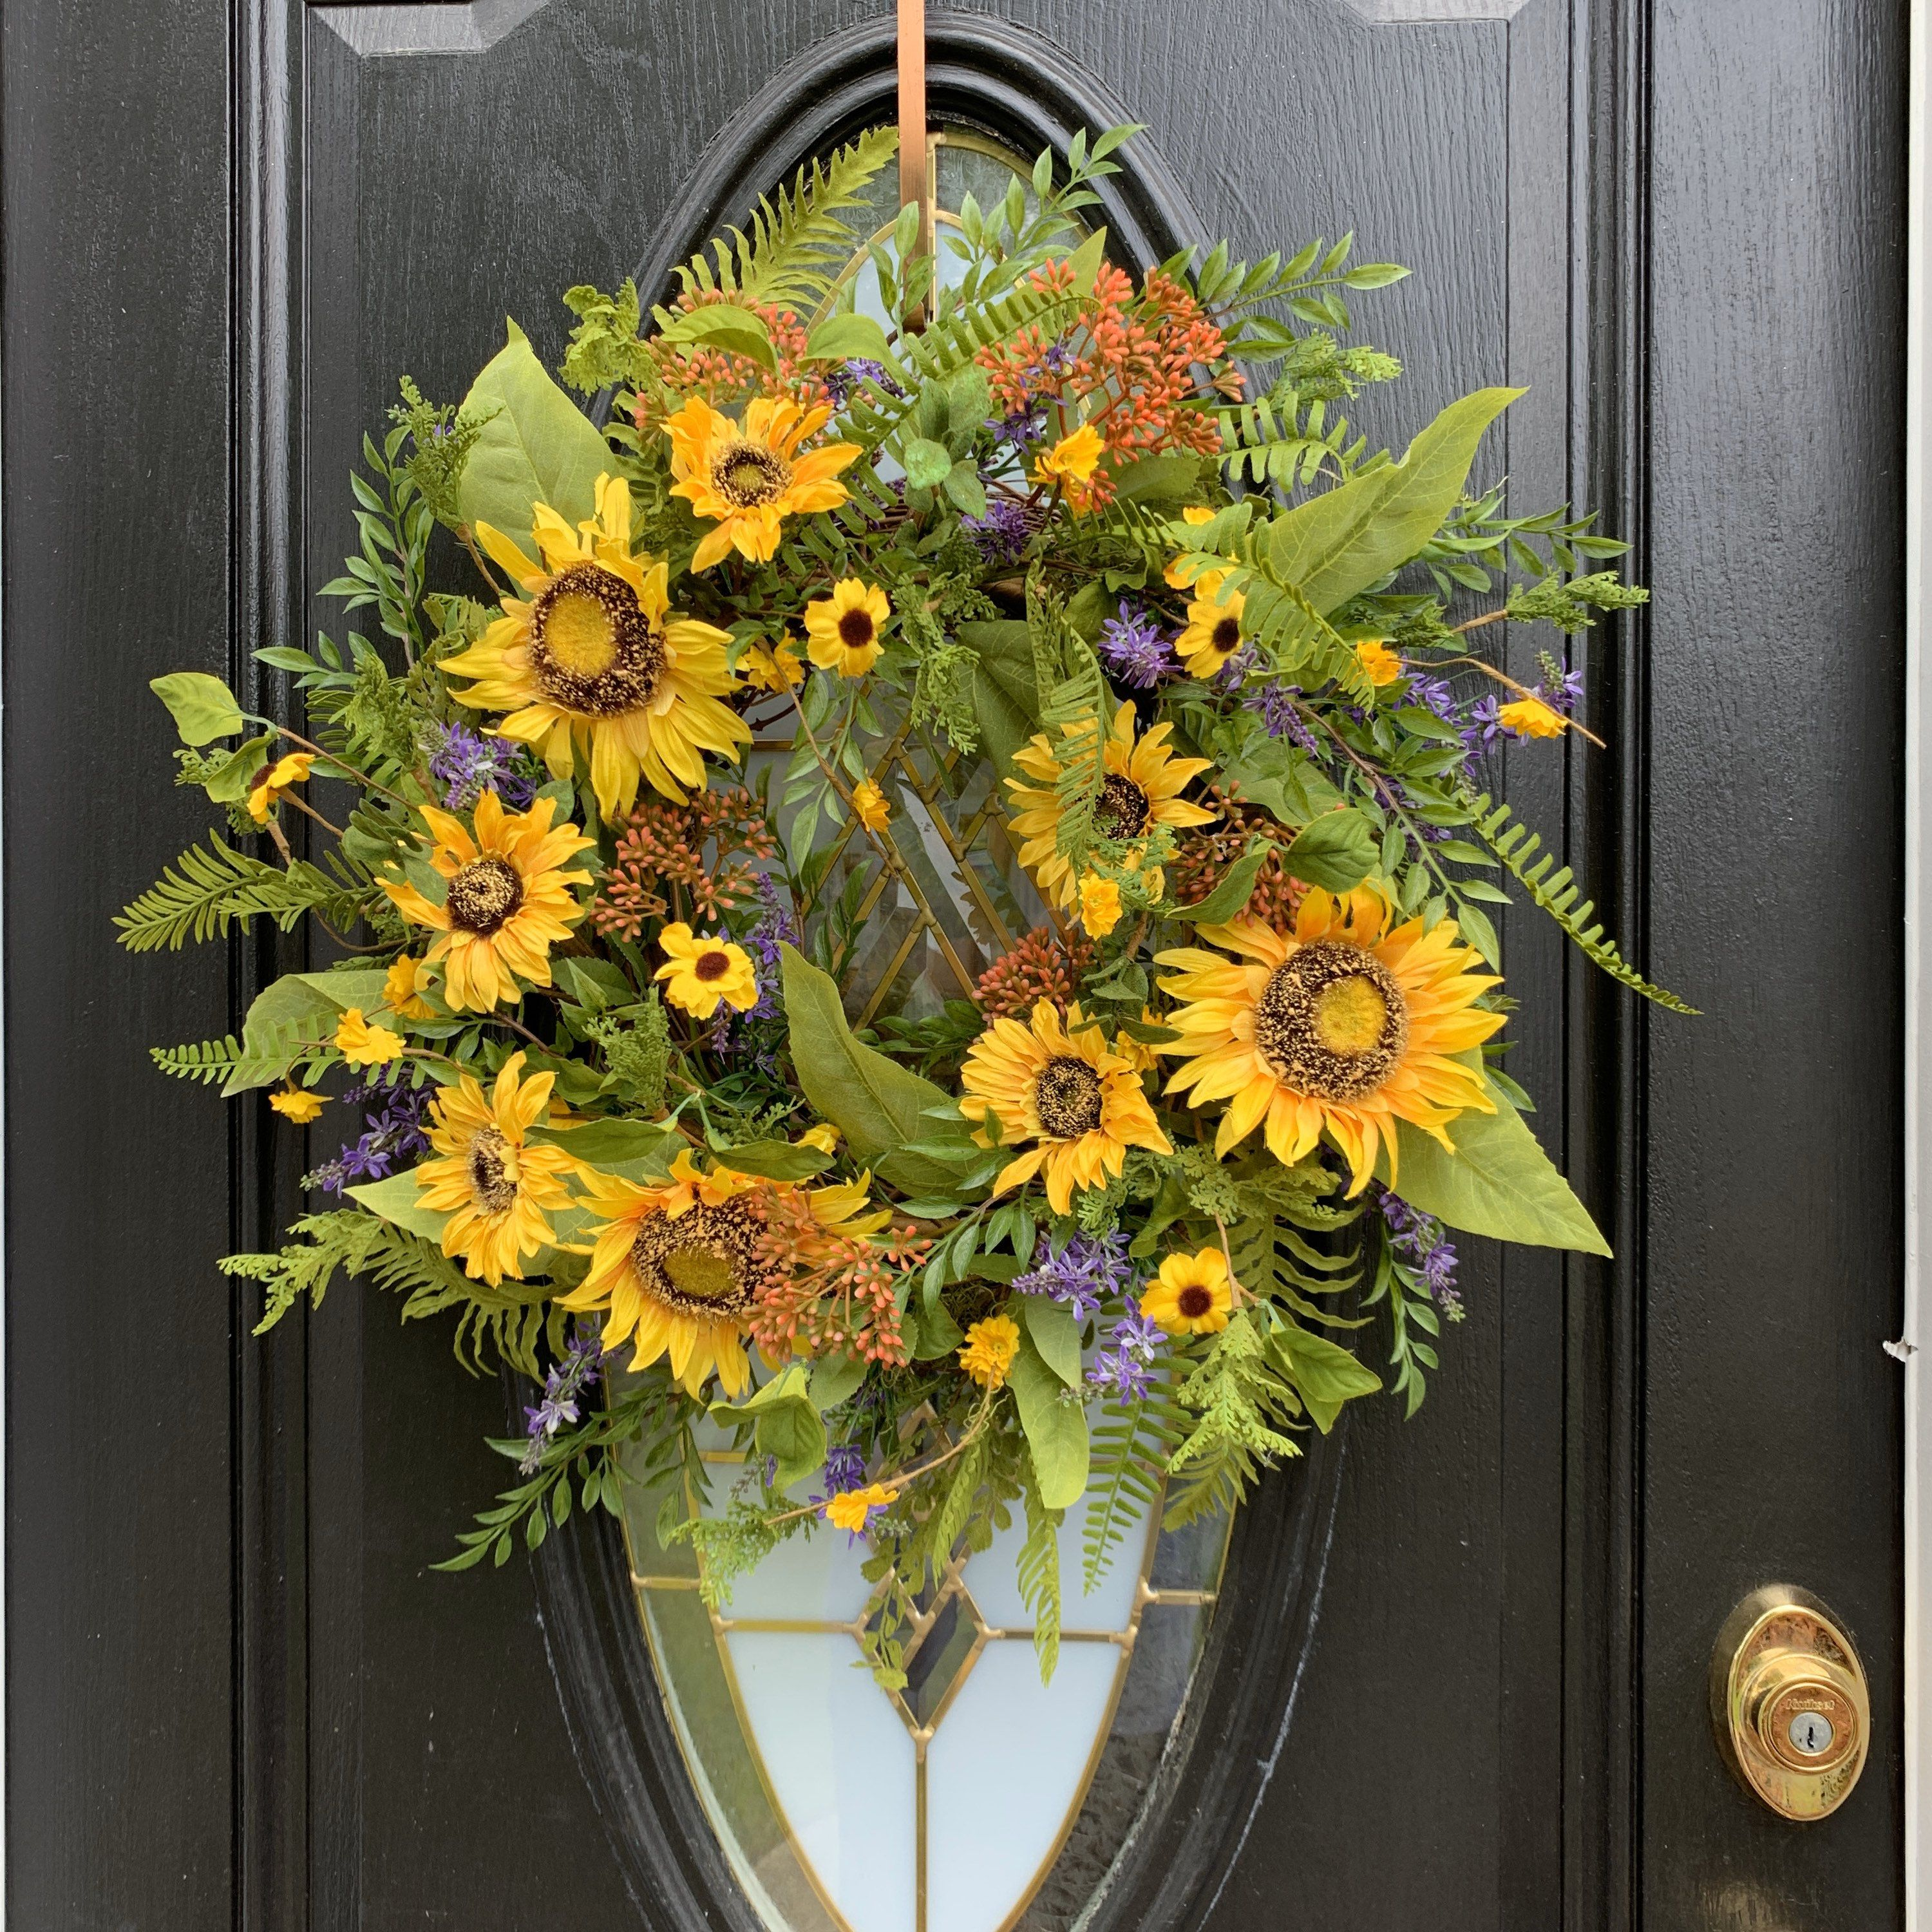 ON SALE Summer or Fall Sunflower Blossom Wreath for Front Door, Yellow Wreath, Sunflower Decor, Entryway Wreath, Southern Wreaths, Porch Wre - $124.95 USD